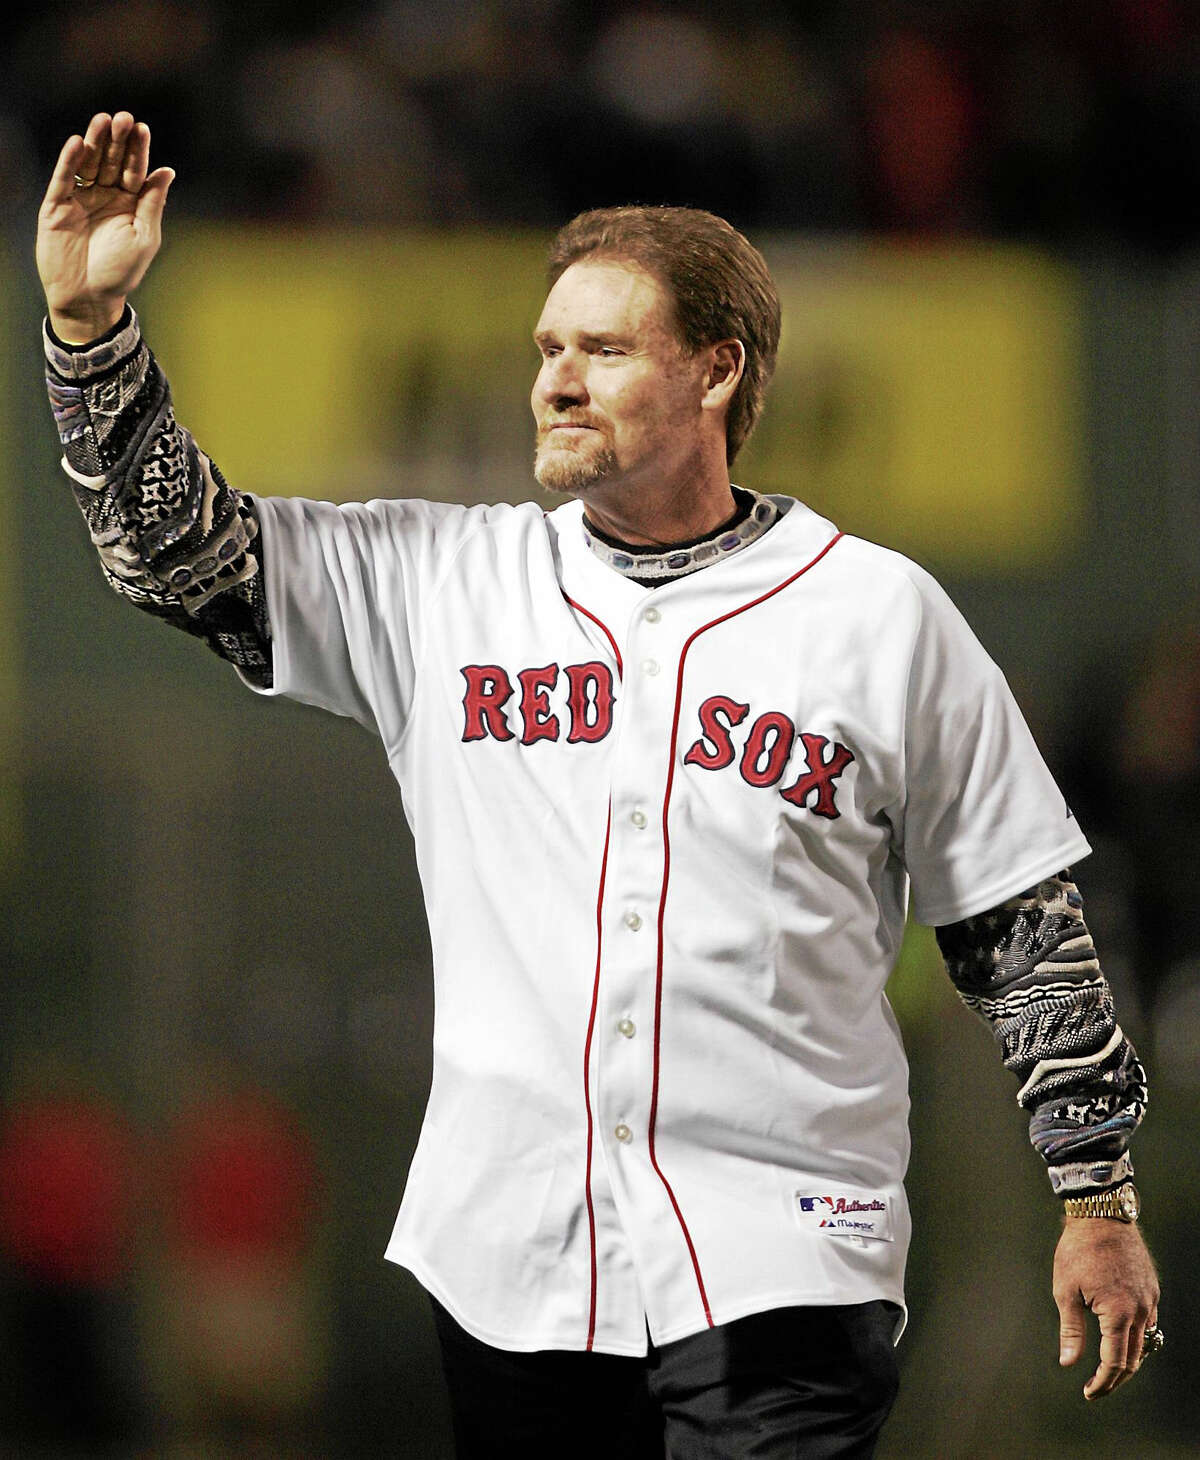 The Boston Red Sox announced on Monday that the team will retire Wade Boggs' No. 26 during a ceremony at Fenway park on May 26.